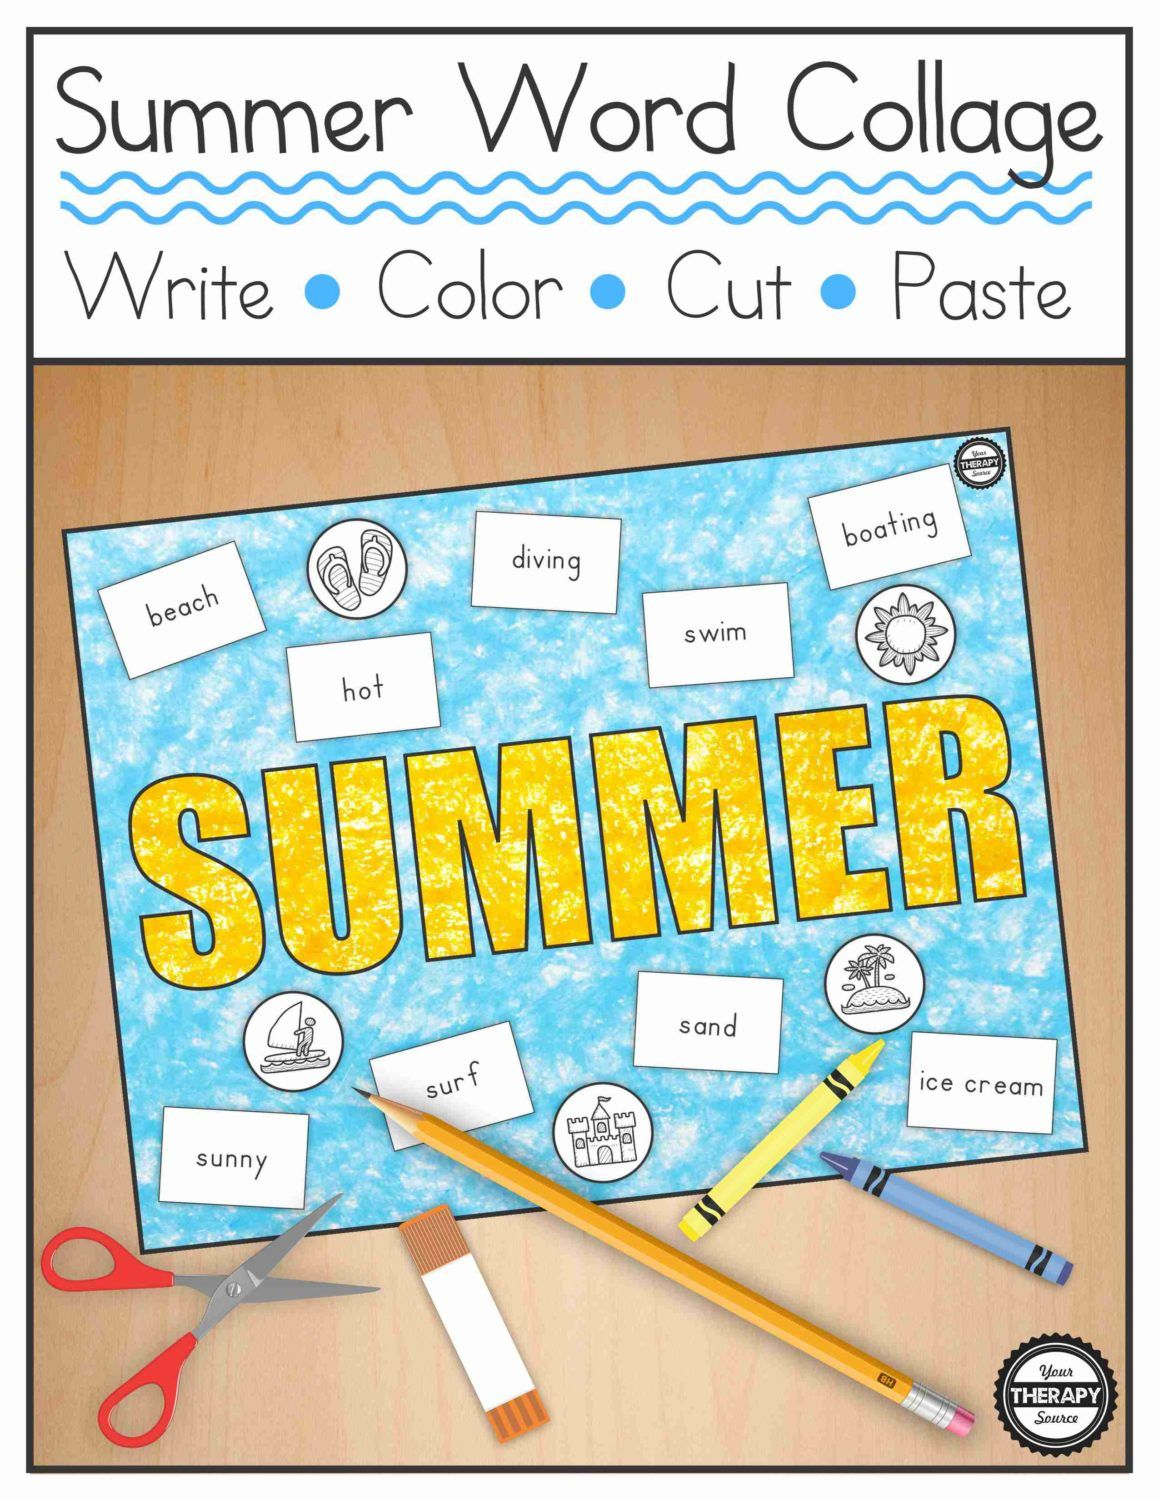 Summer Word Bank Collage - Black and White and Color   Writing skills